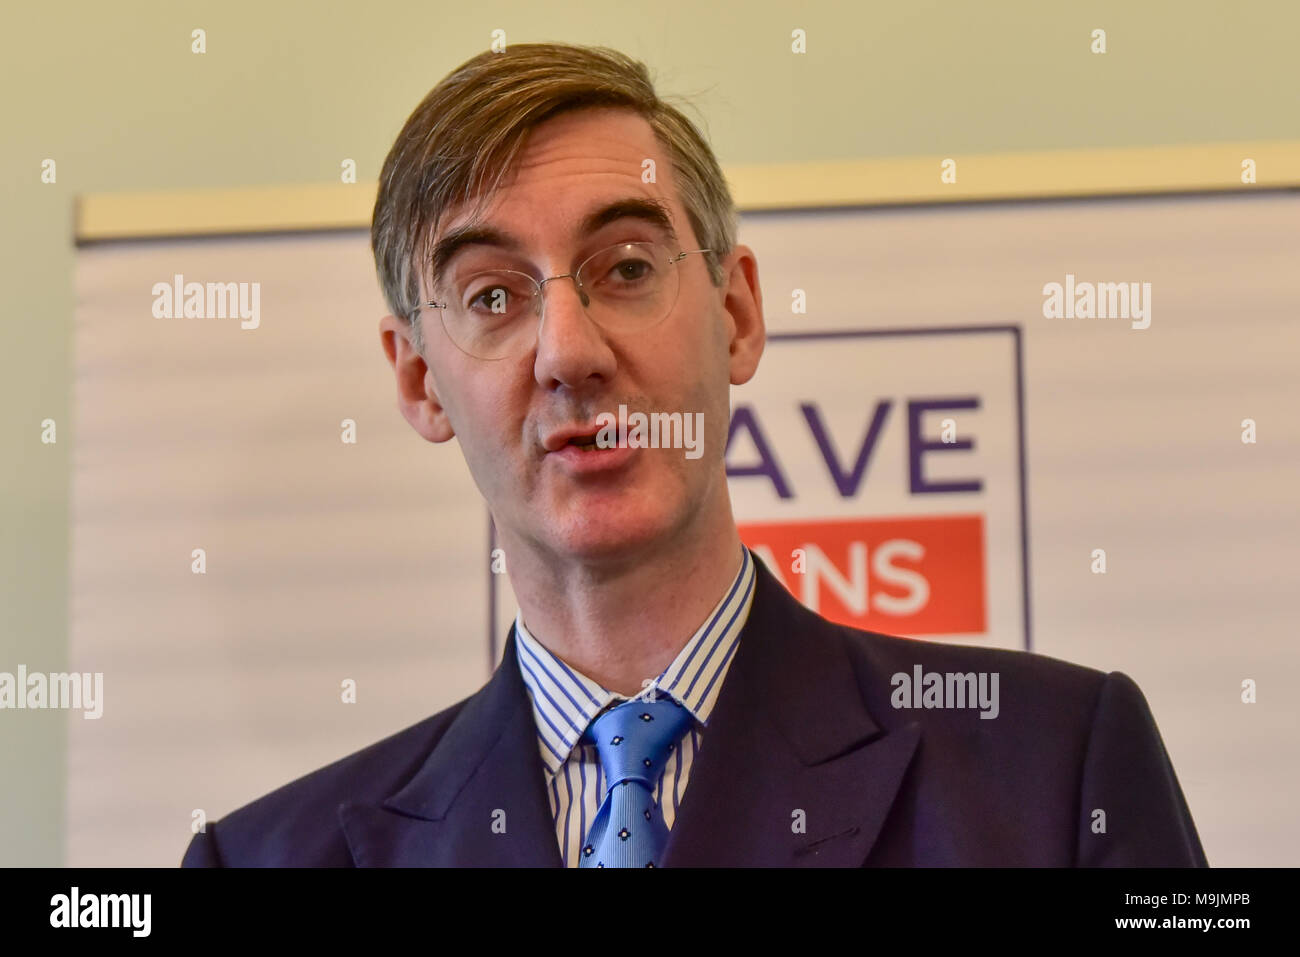 "London, United Kingdom. 27 March 2018. Jacob Rees-Mogg gives a major Brexit speech at a Leave Means Leave event in central London. Tory MP Rees-Mogg slammed Brussels for its ""bullying"" approach and said that they have entered negotiations ""in the spirit of they know best and we must do as we are told"".  Credit: Peter Manning/Alamy Live News - Stock Image"